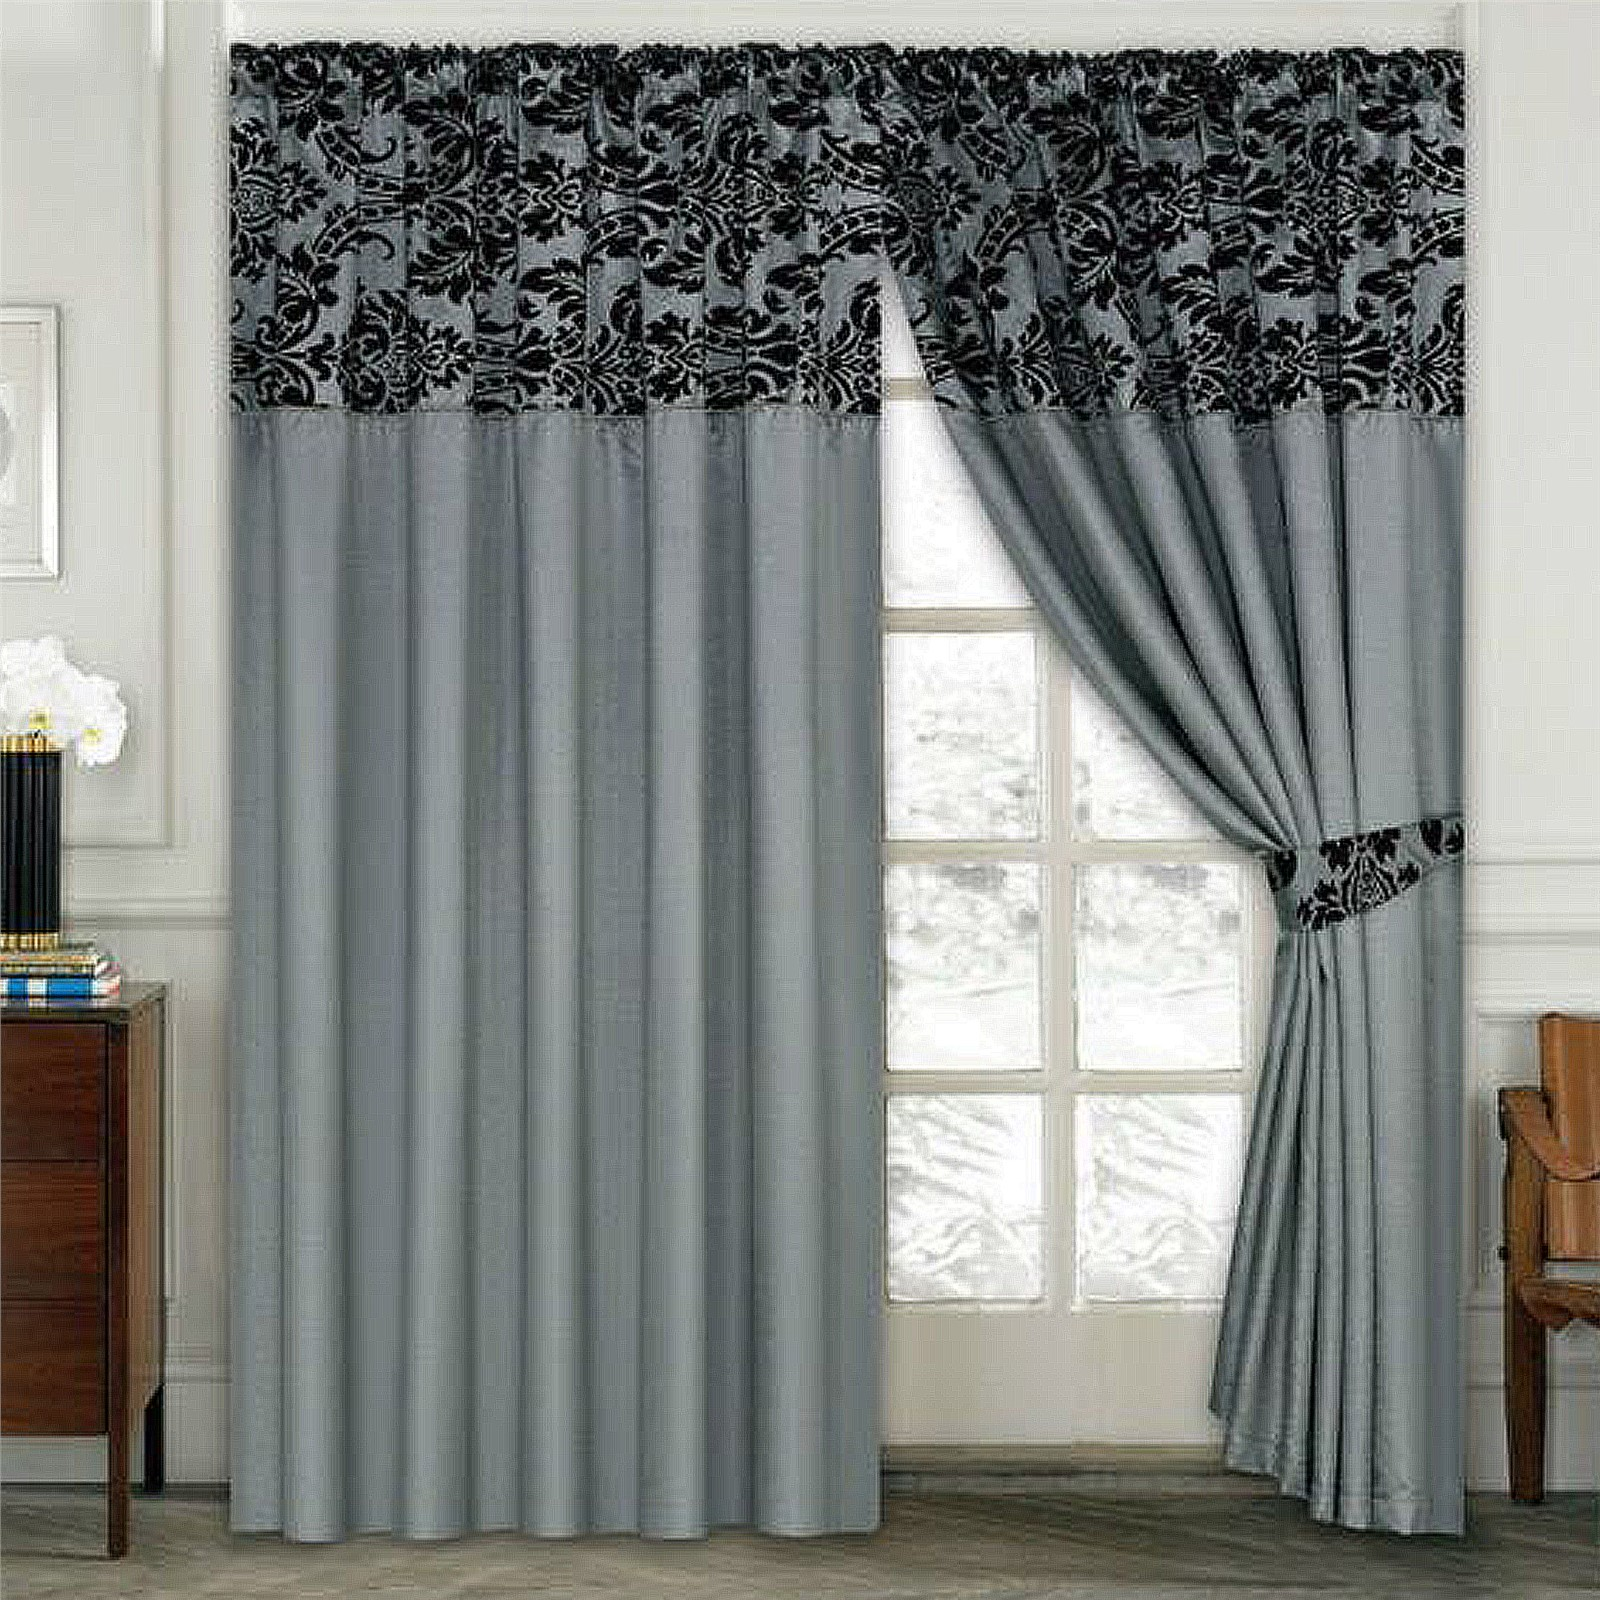 Lovely LUXURY Damask Curtains Pair Of Half Flock Pencil